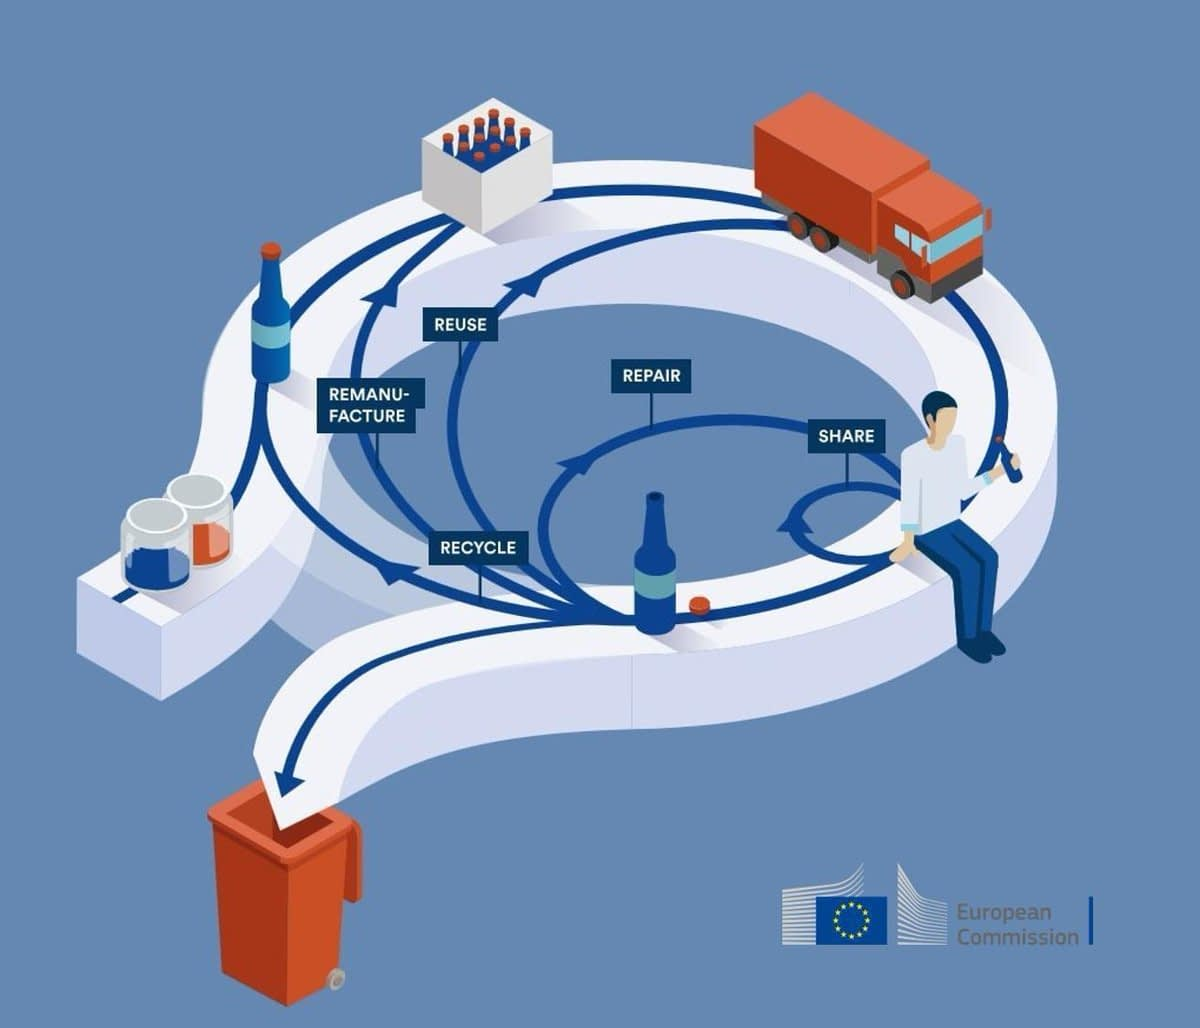 , European Commission – Circular Economy Package Report: Questions & Answers, TheCircularEconomy.com